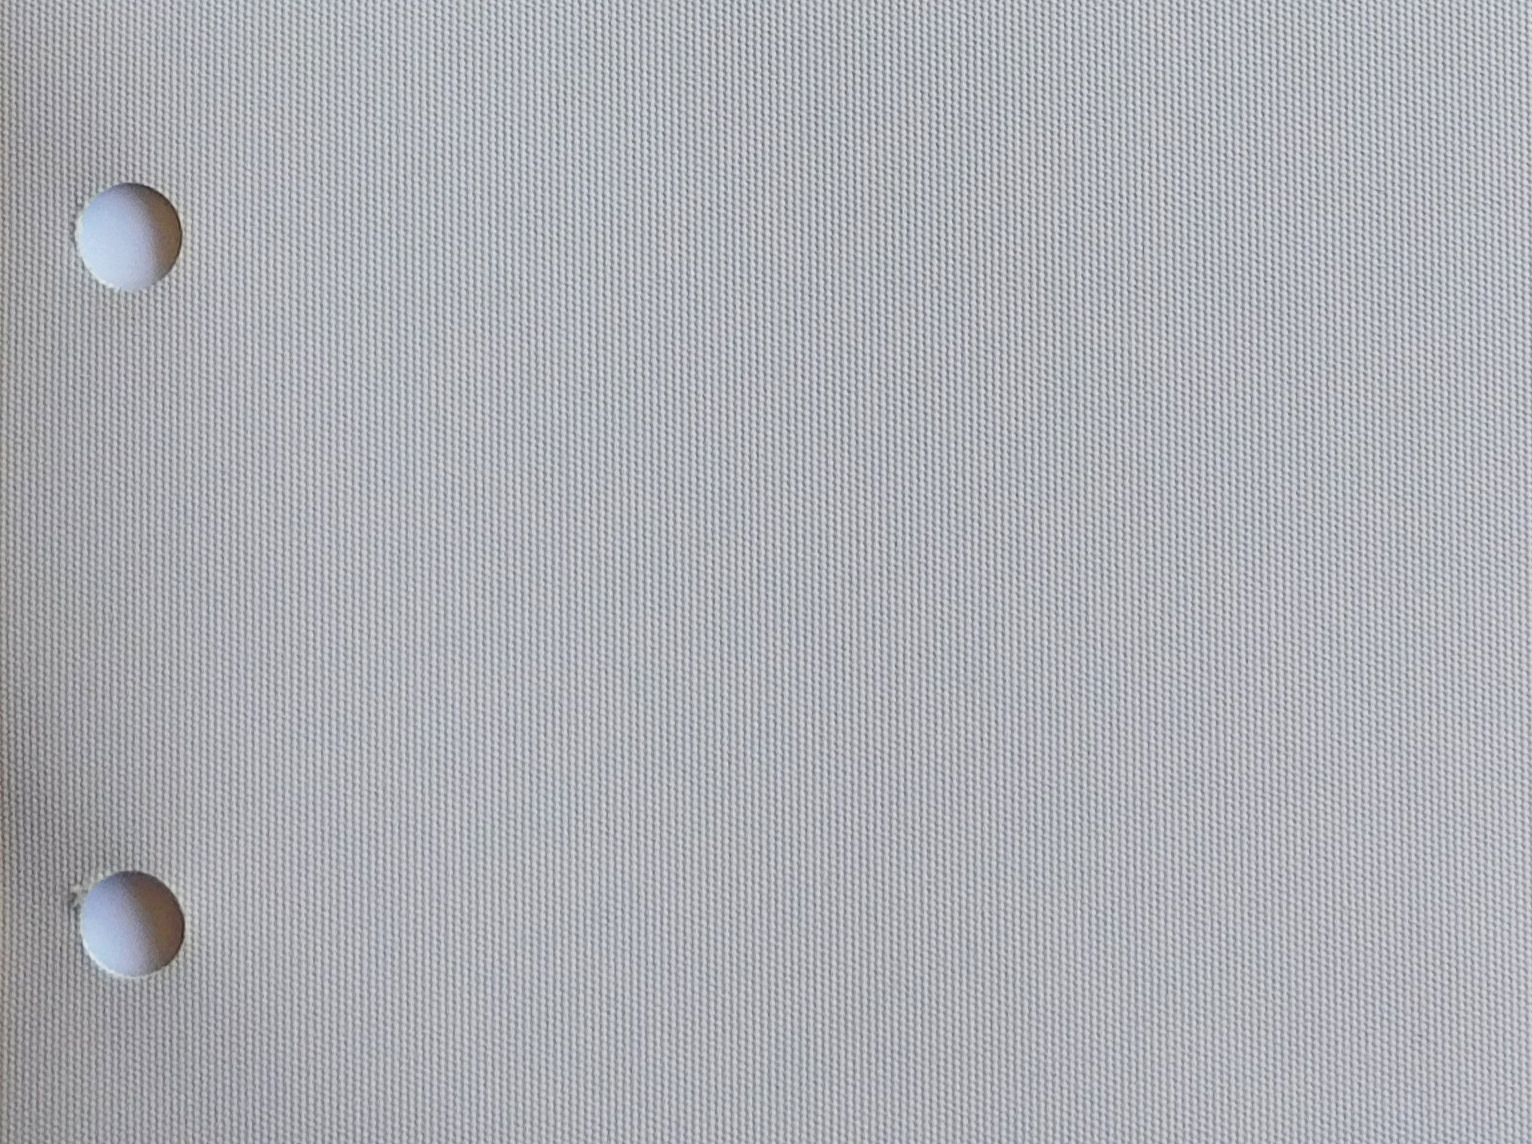 Vitra Vapour blind fabric